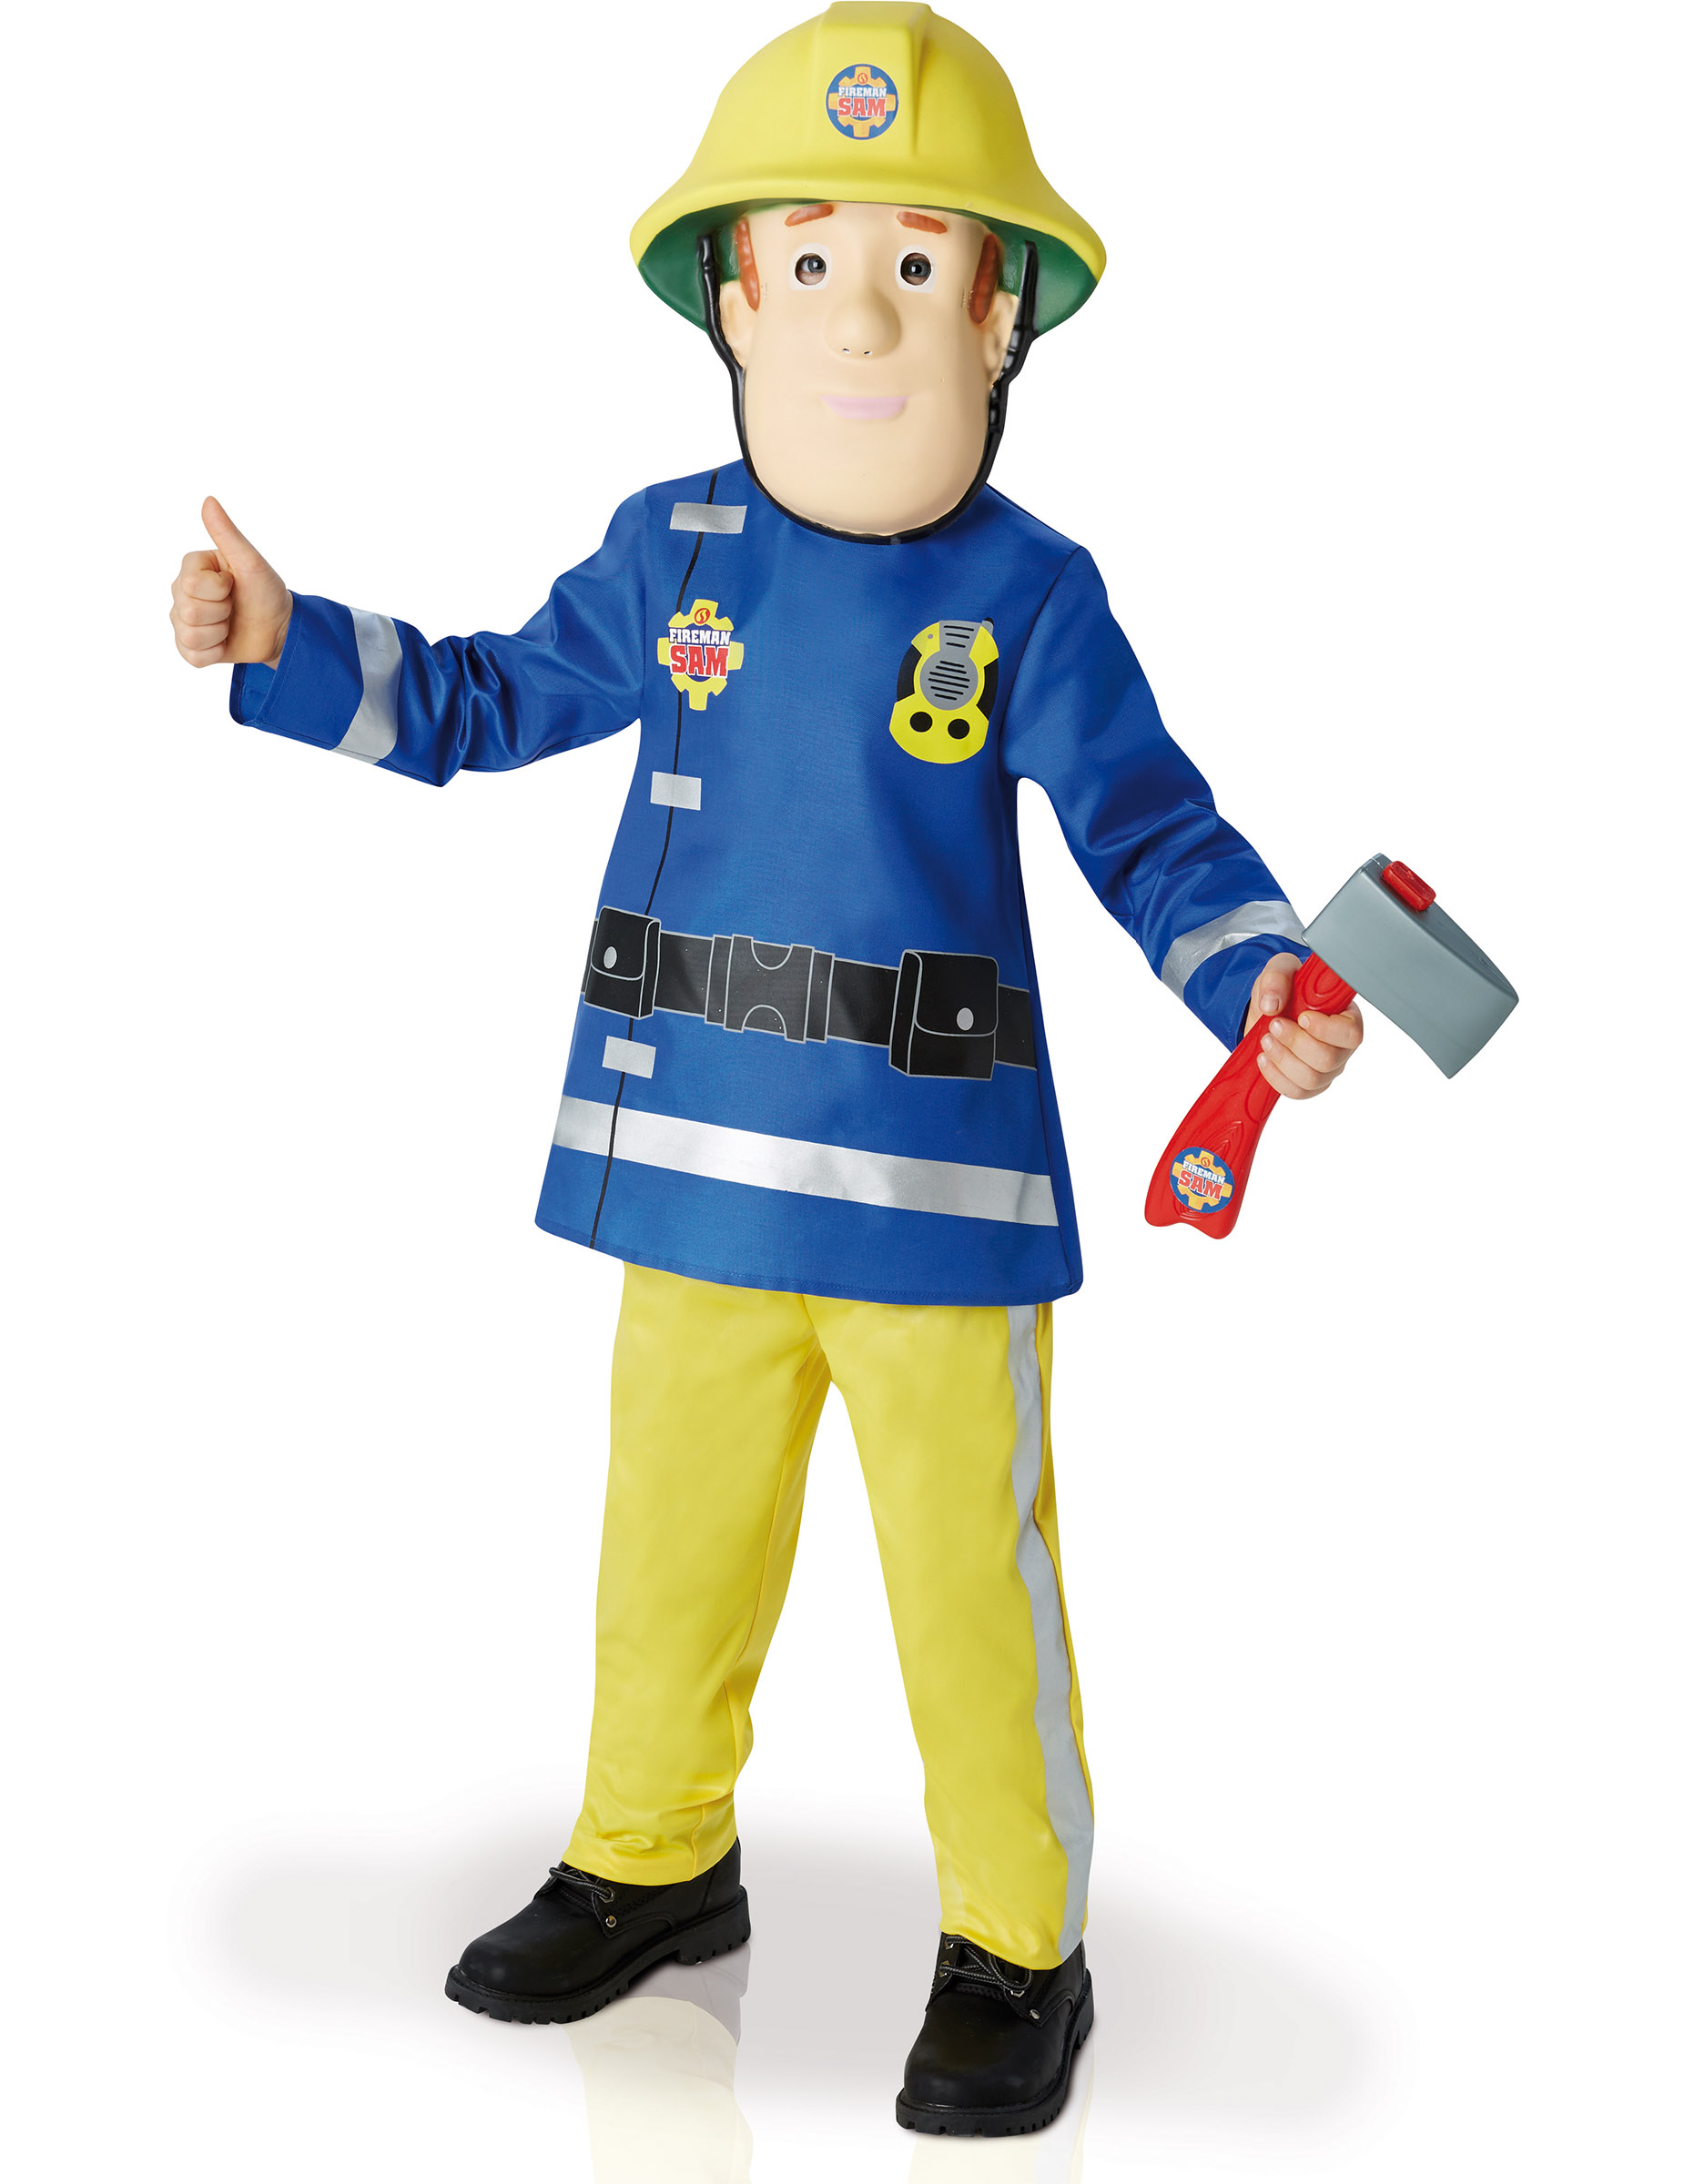 fireman sam feuerwehrmann kinderkost m lizenzware blau gelb g nstige faschings kost me bei. Black Bedroom Furniture Sets. Home Design Ideas